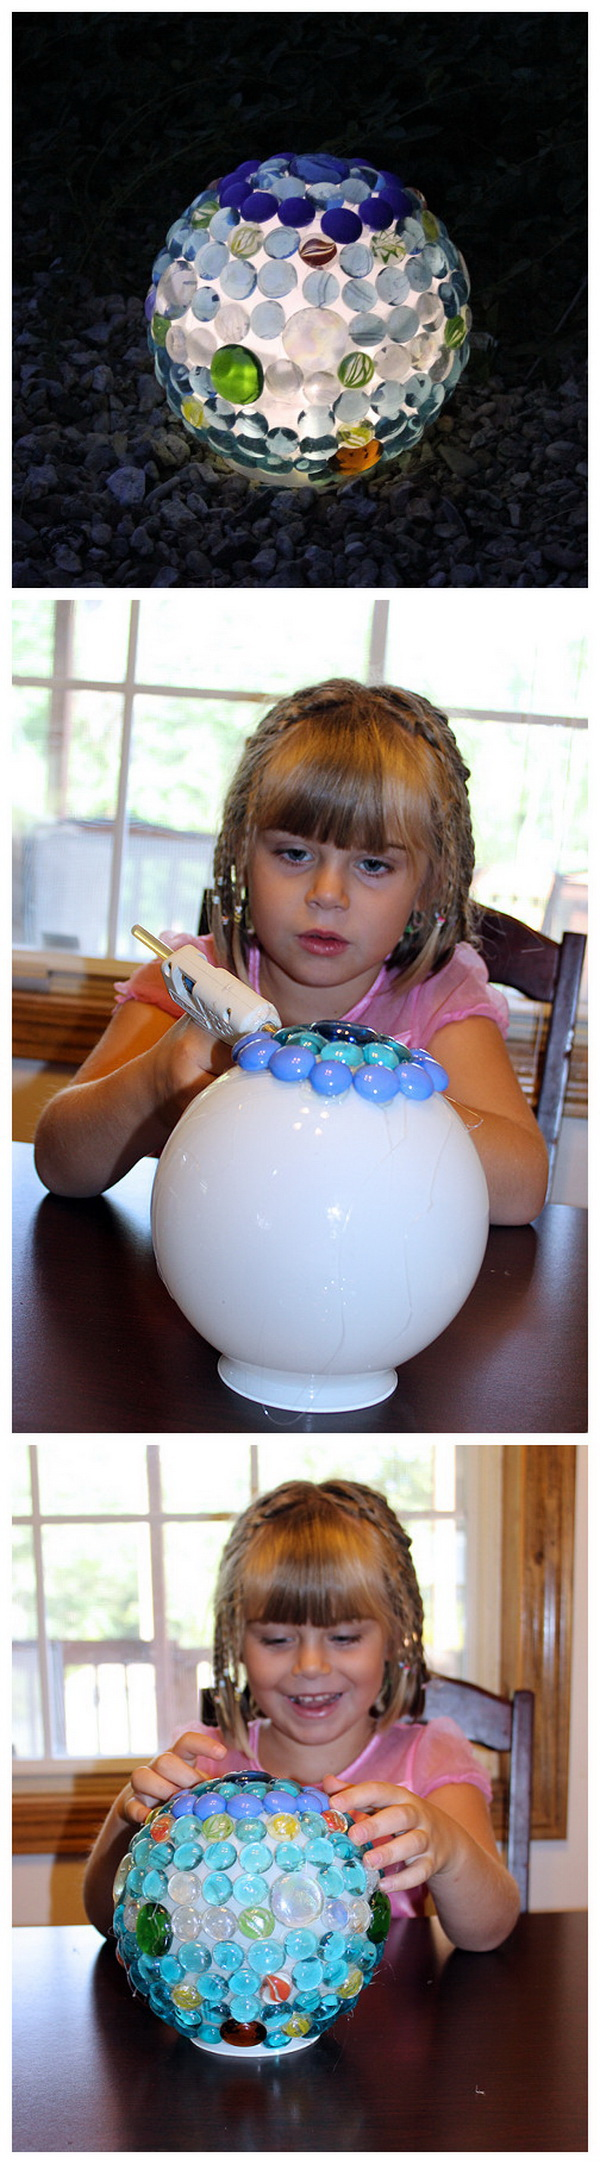 DIY Glowing Garden Ball. Make this stuuning glowing garden ball with a light cover and some left over decorative stones! It is easy and fun to make with your kids!